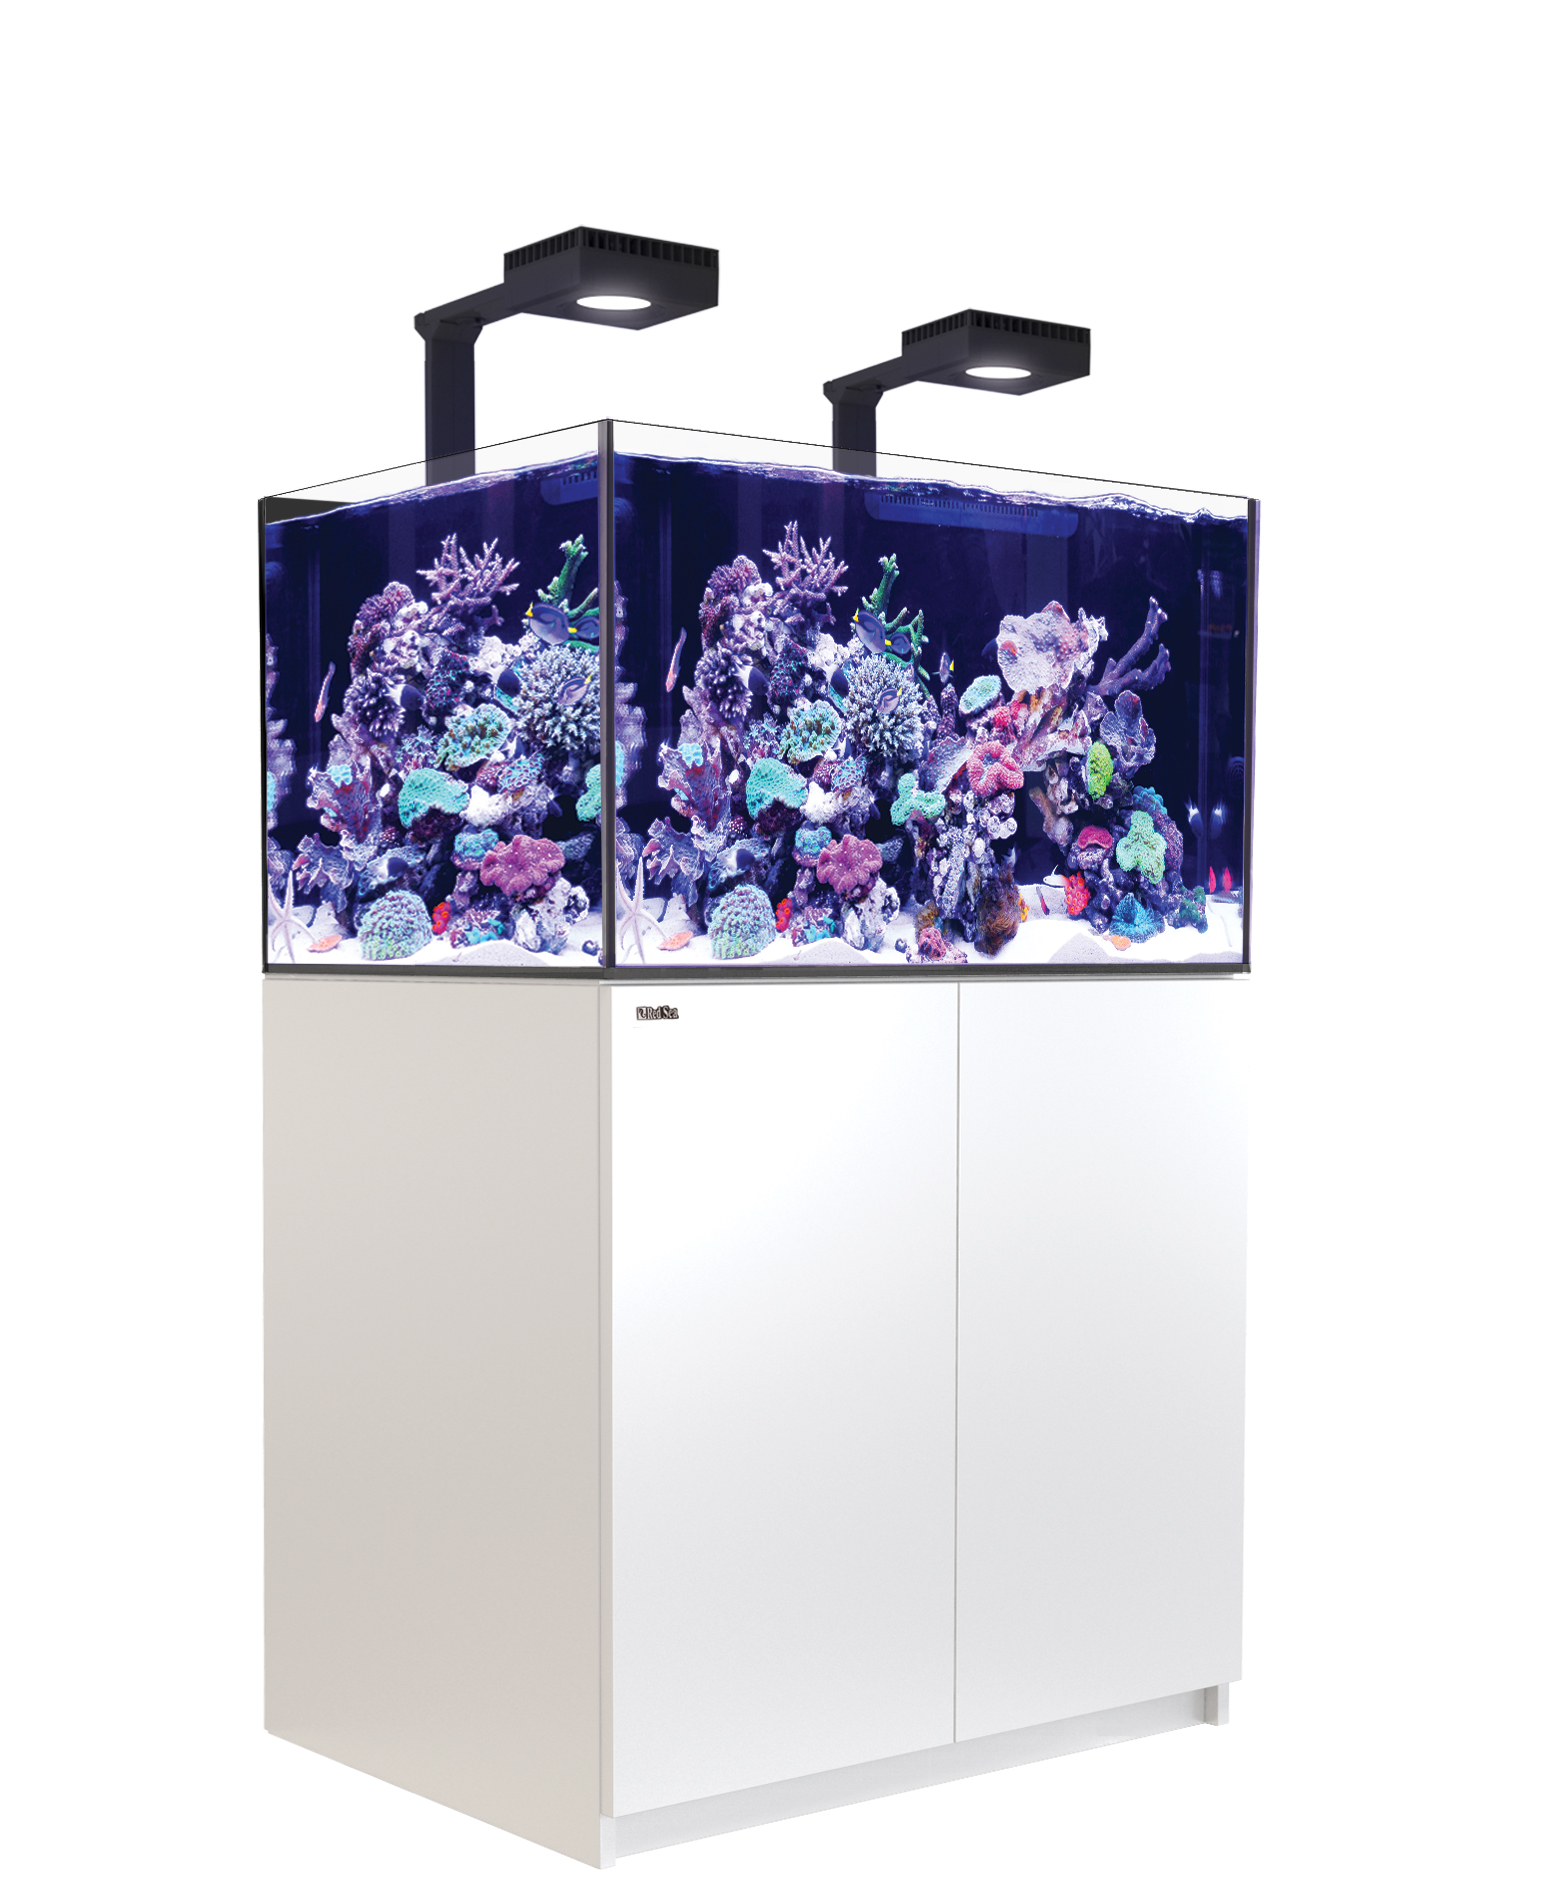 REEFER  XL 300 Deluxe System  - White   (incl. 2 X ReefLED  90 & Mounting Arms)